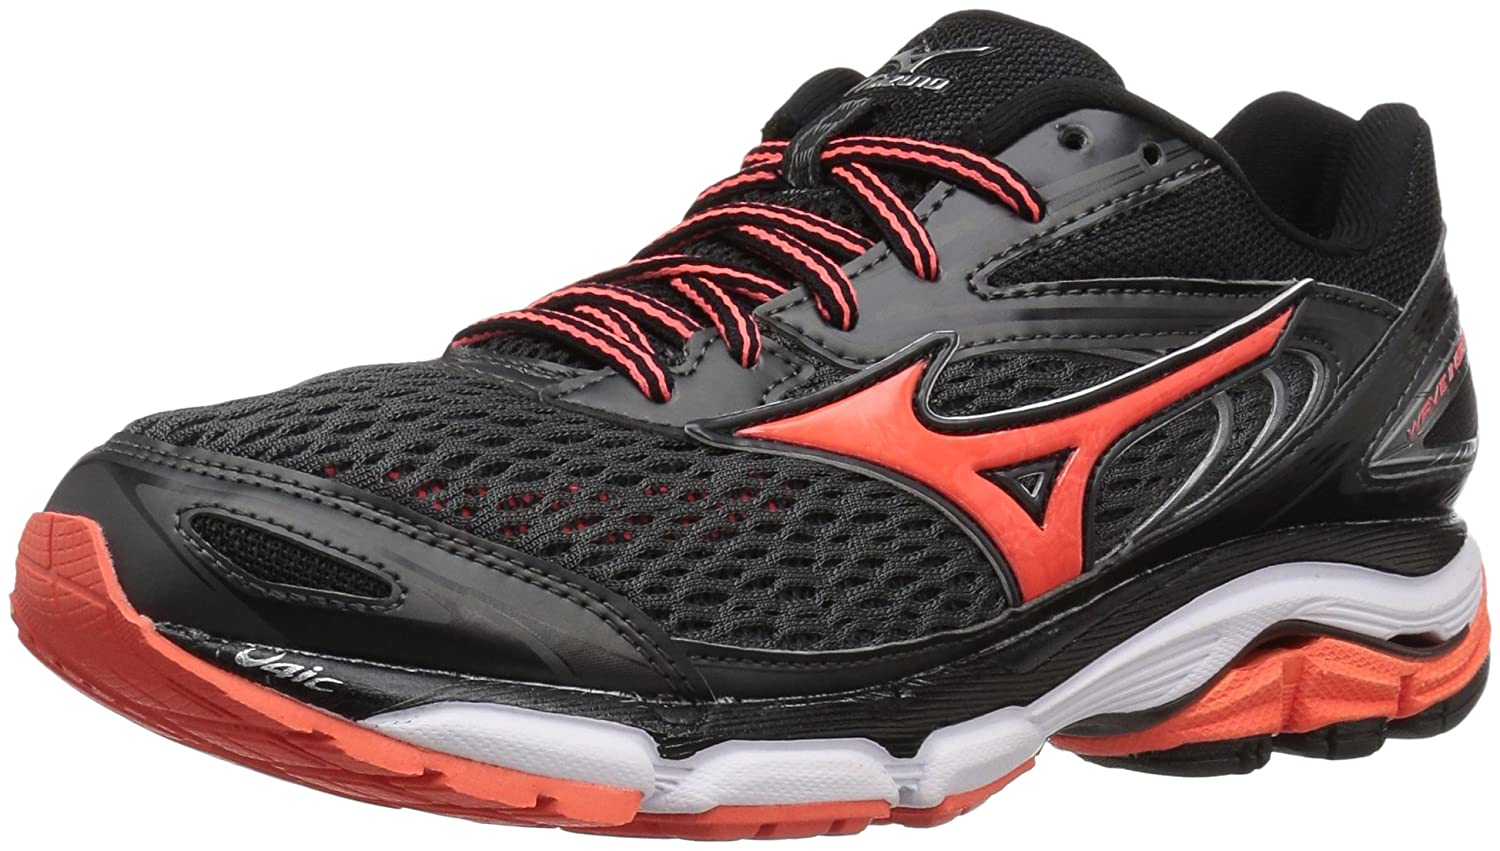 475a932d906 Removable insole Mizuno Women s Shoe Wave Inspire 13 Running Shoe Women s  B01H3EFHVM 9 B(M) US ...